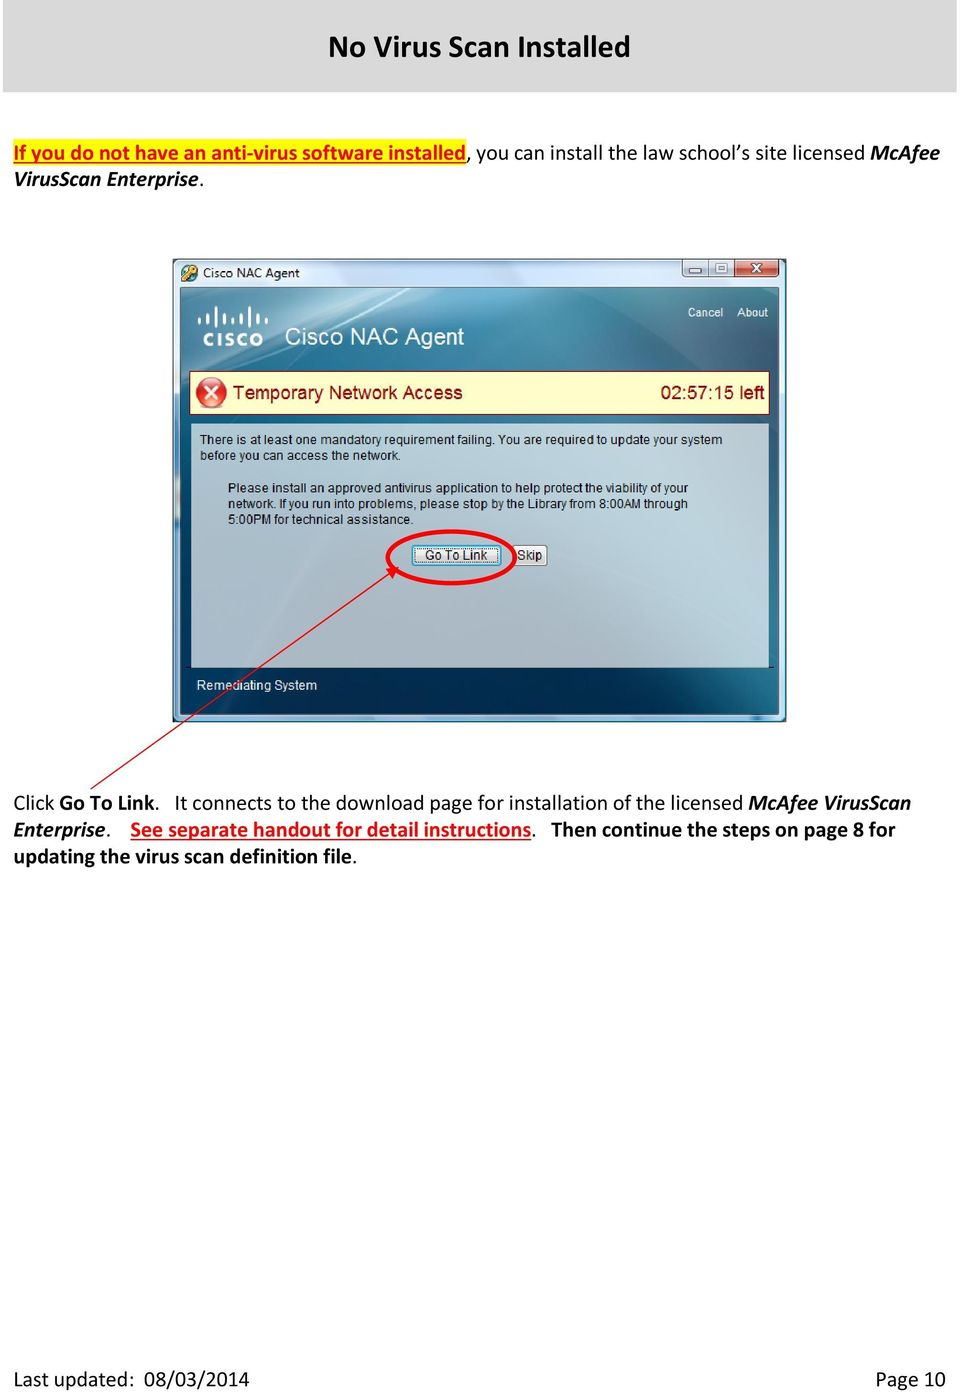 It connects to the download page for installation of the licensed McAfee VirusScan Enterprise.